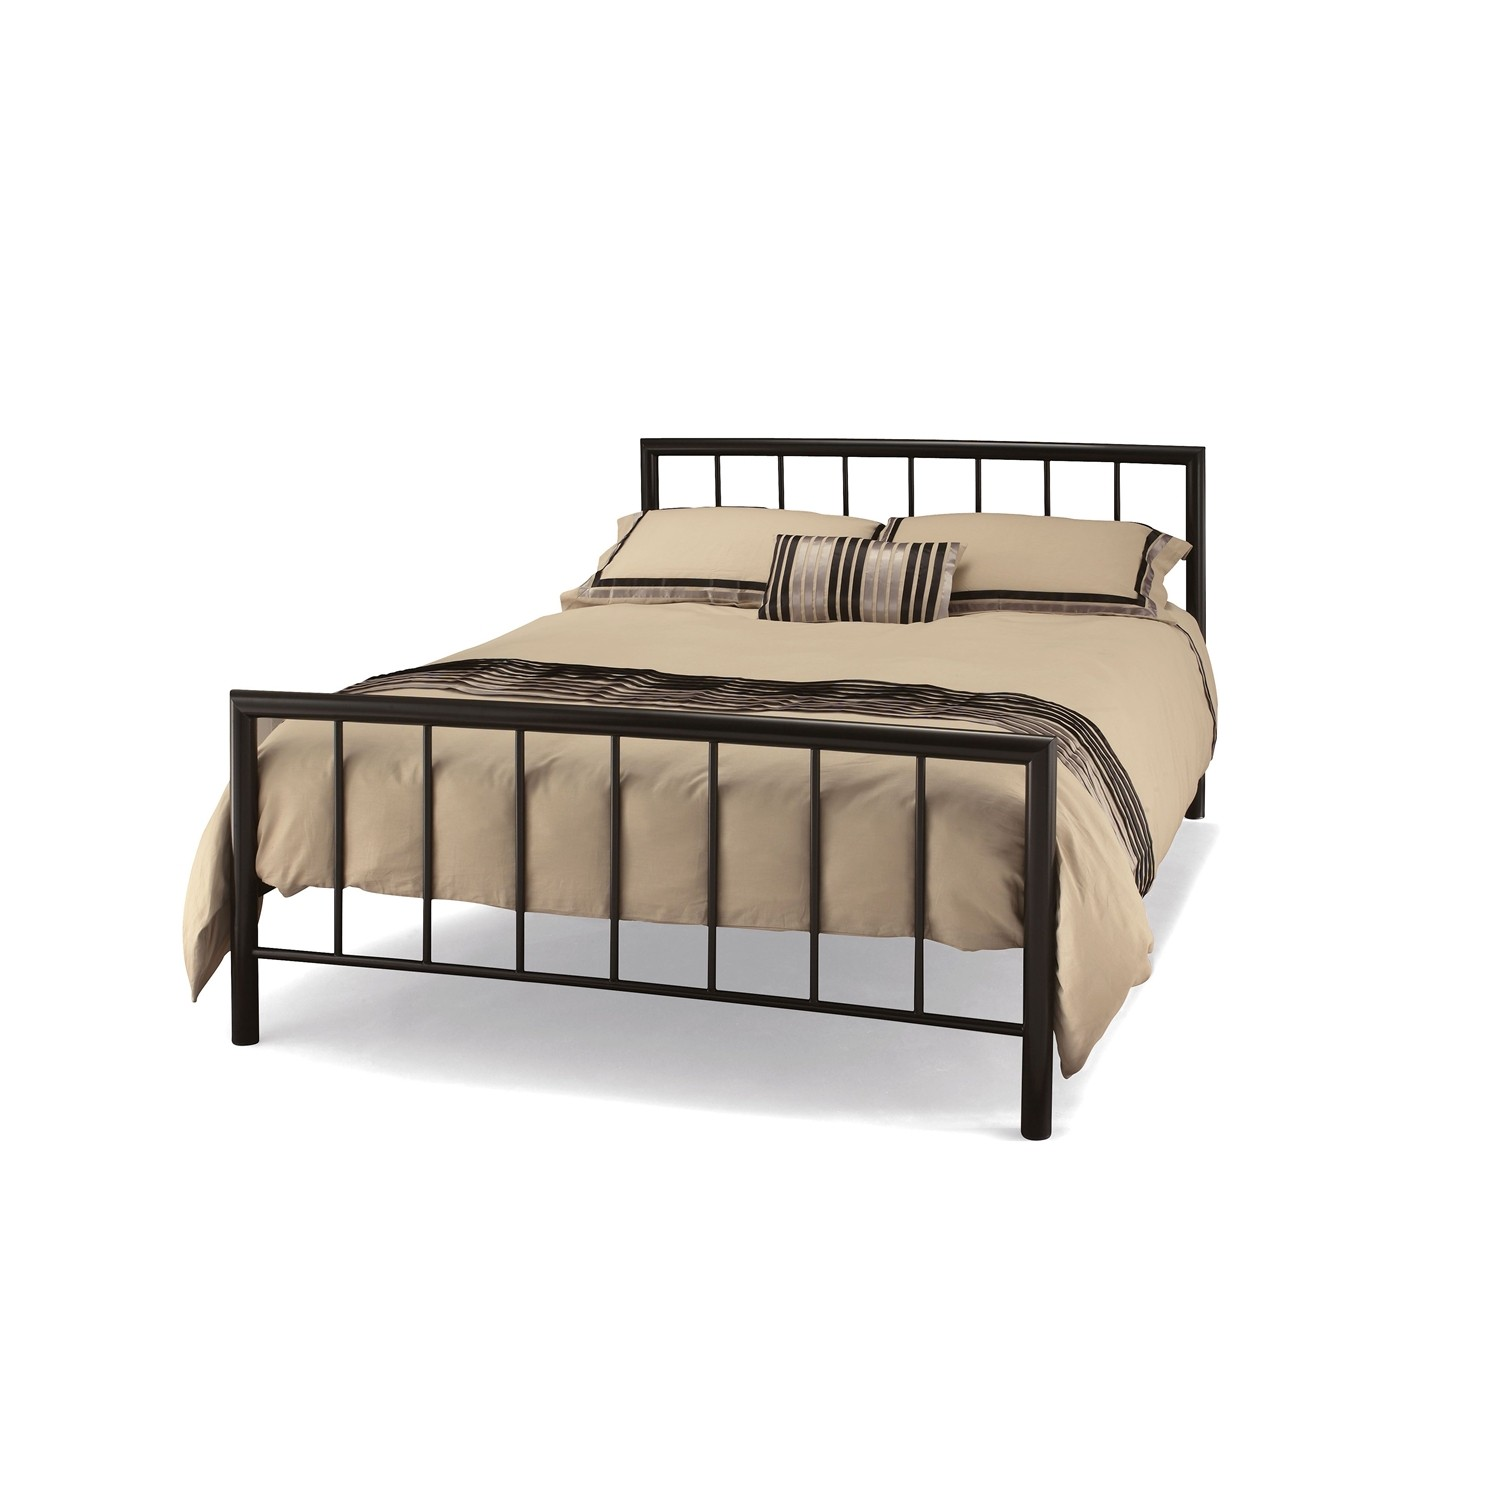 Casa modena small double bed frame leekes for Small bed frame